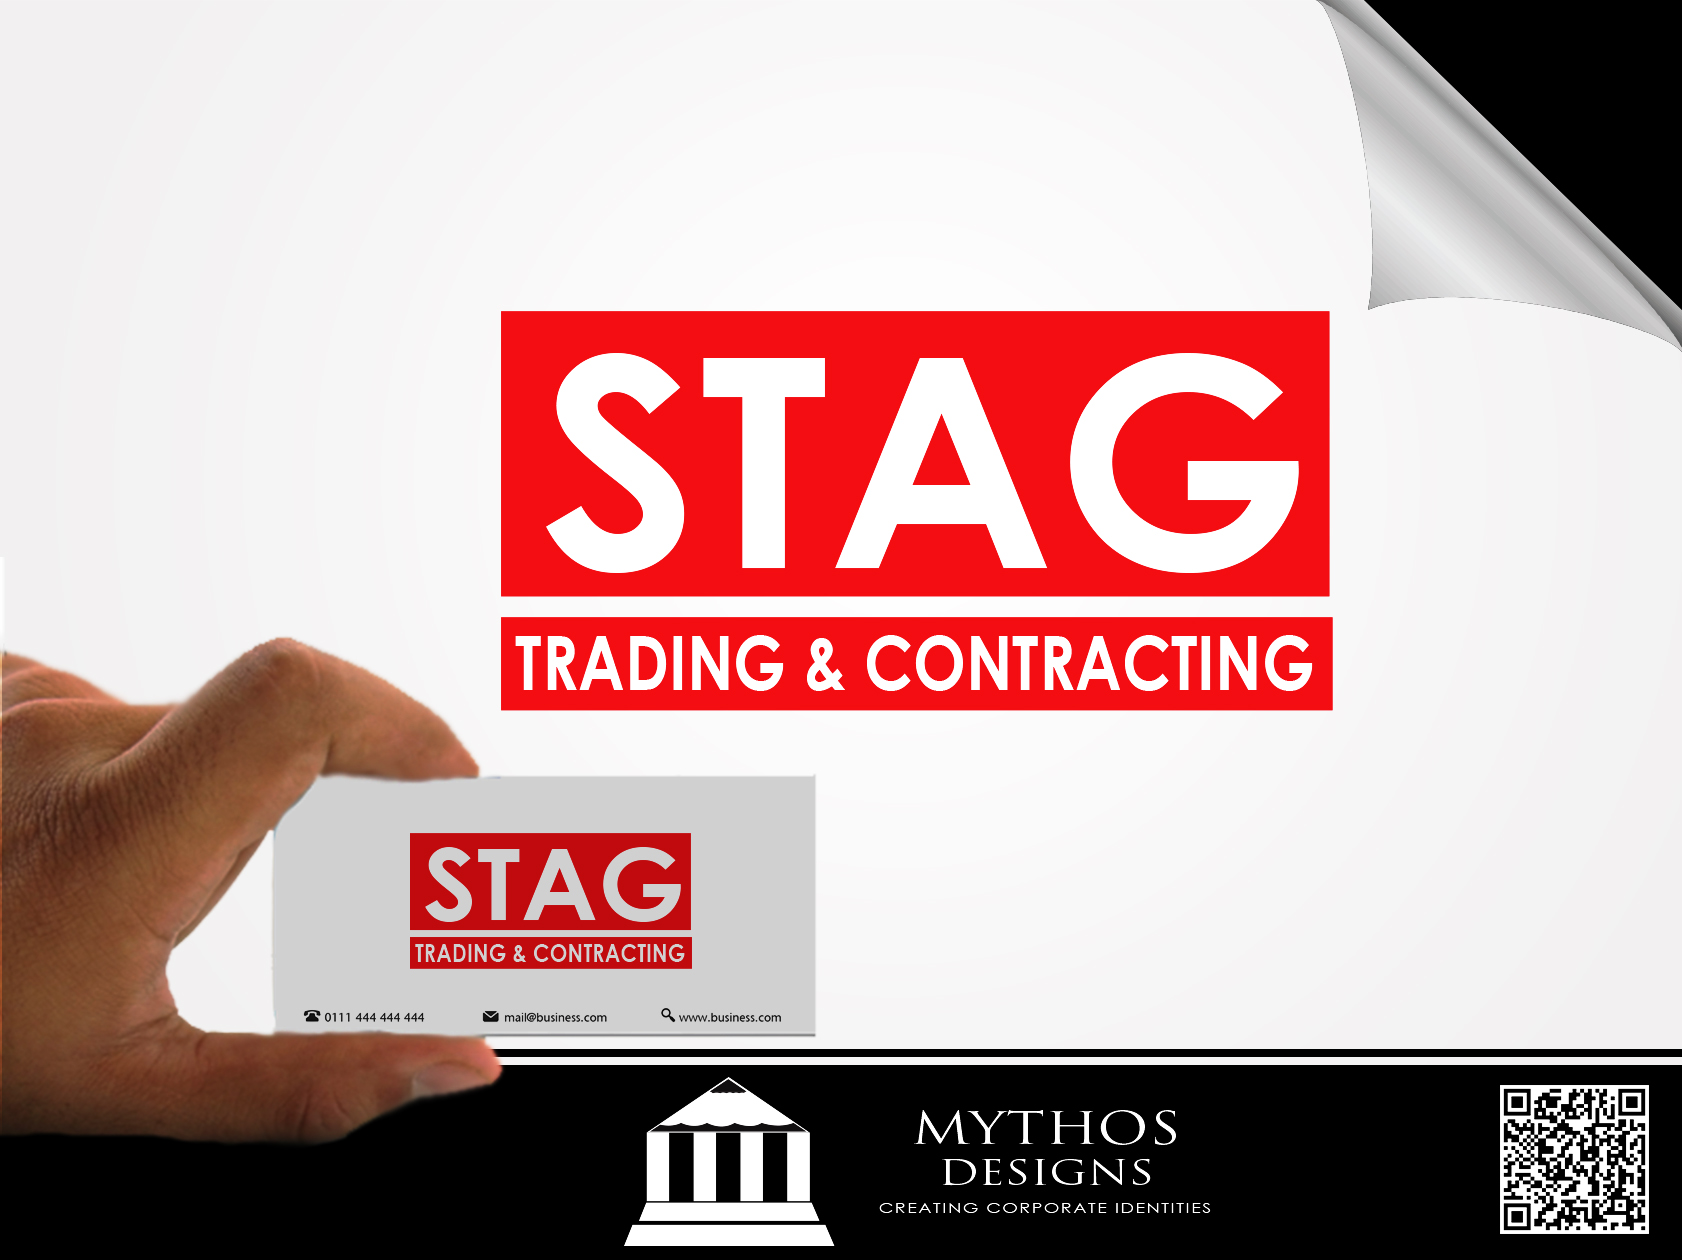 Logo Design by Mythos Designs - Entry No. 320 in the Logo Design Contest Captivating Logo Design for STAG Trading & Contracting.